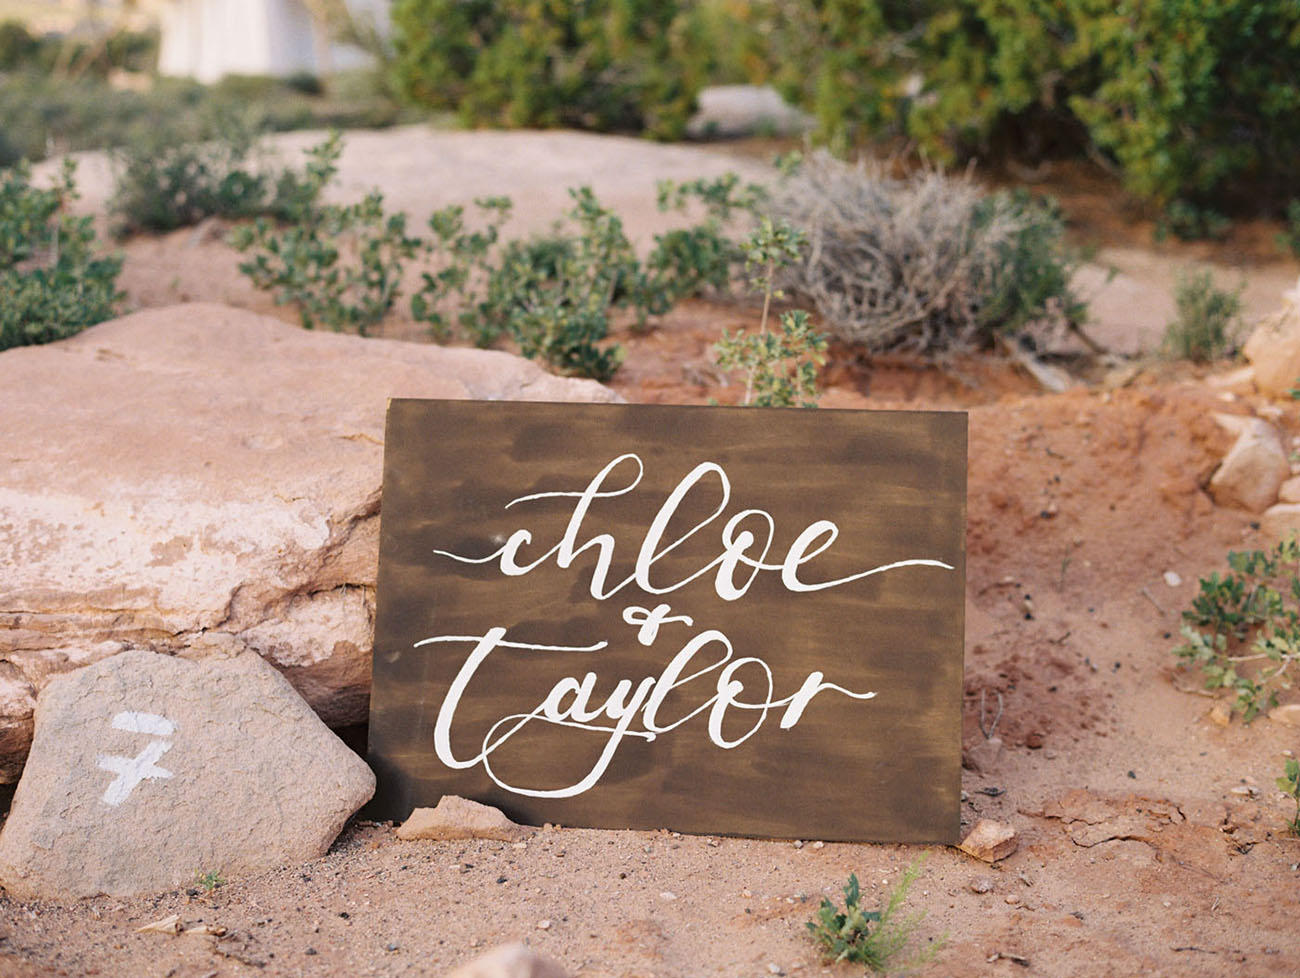 Coachella Festival Wedding name board